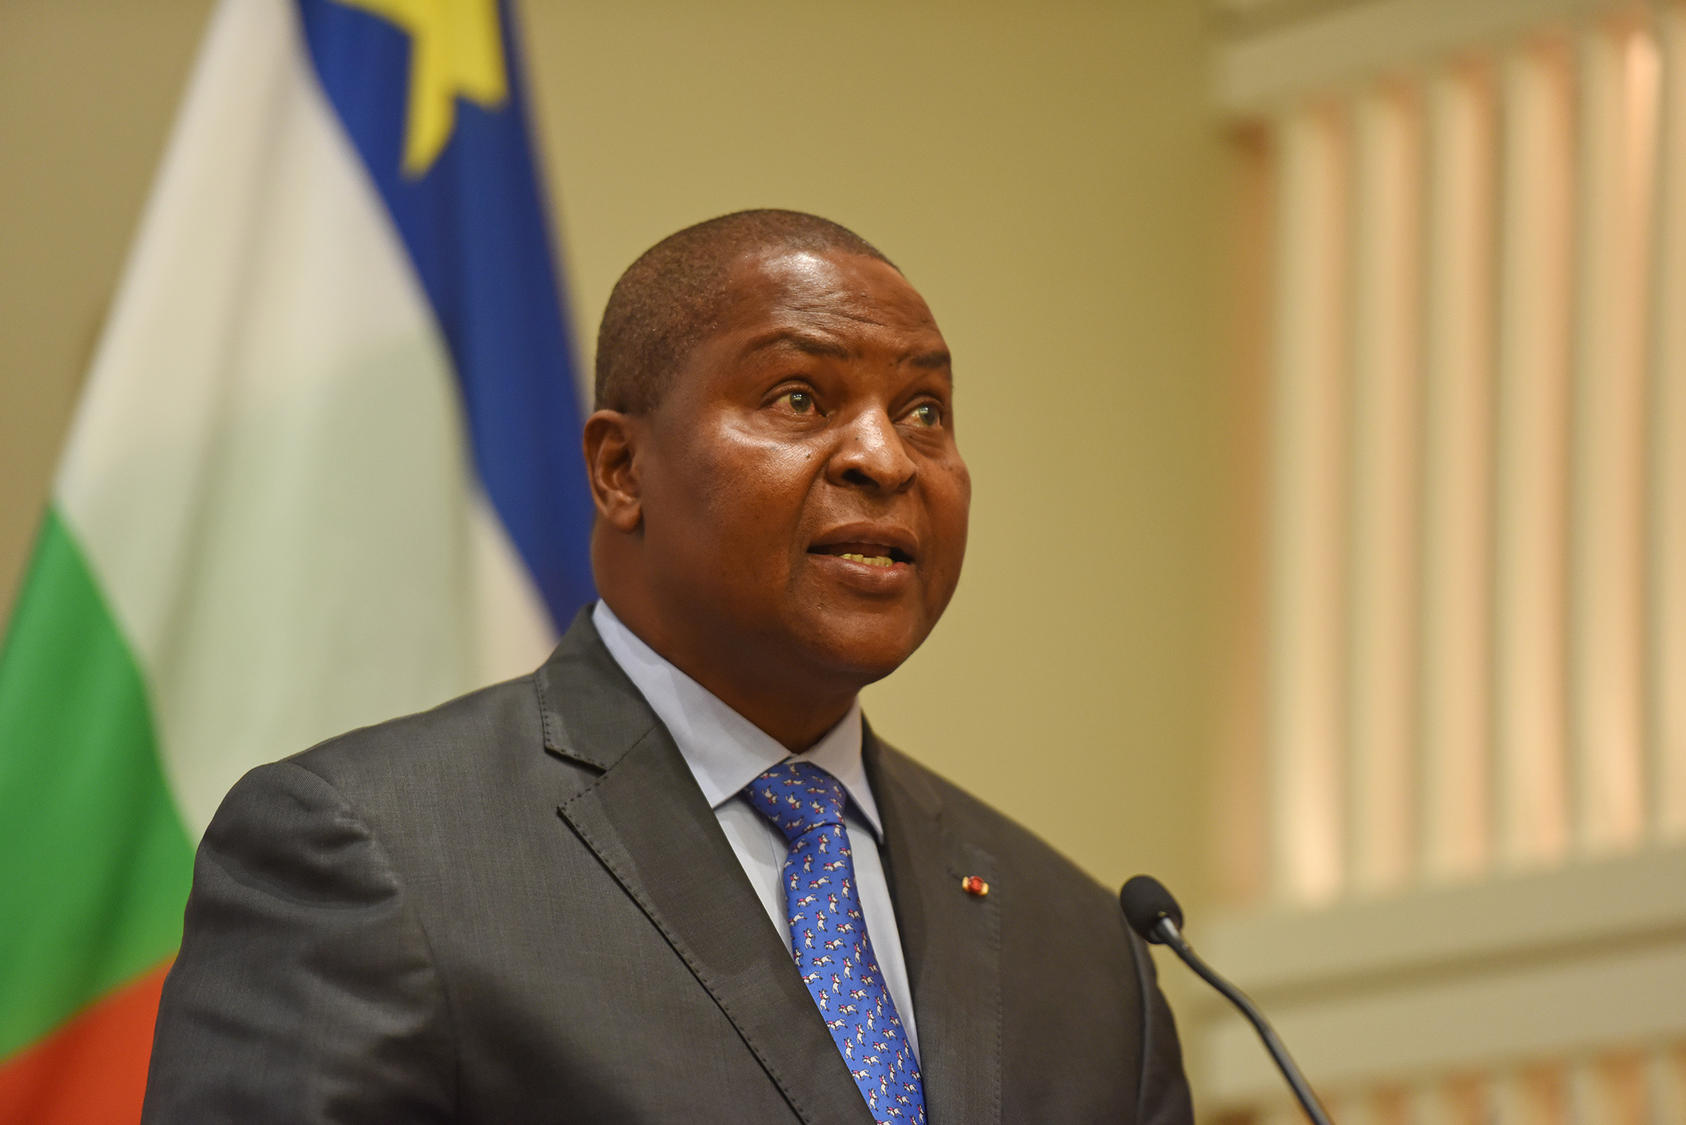 Central African Republic President Faustin-Archange Touadéra at the U.S. Institute of Peace, April 9, 2019.